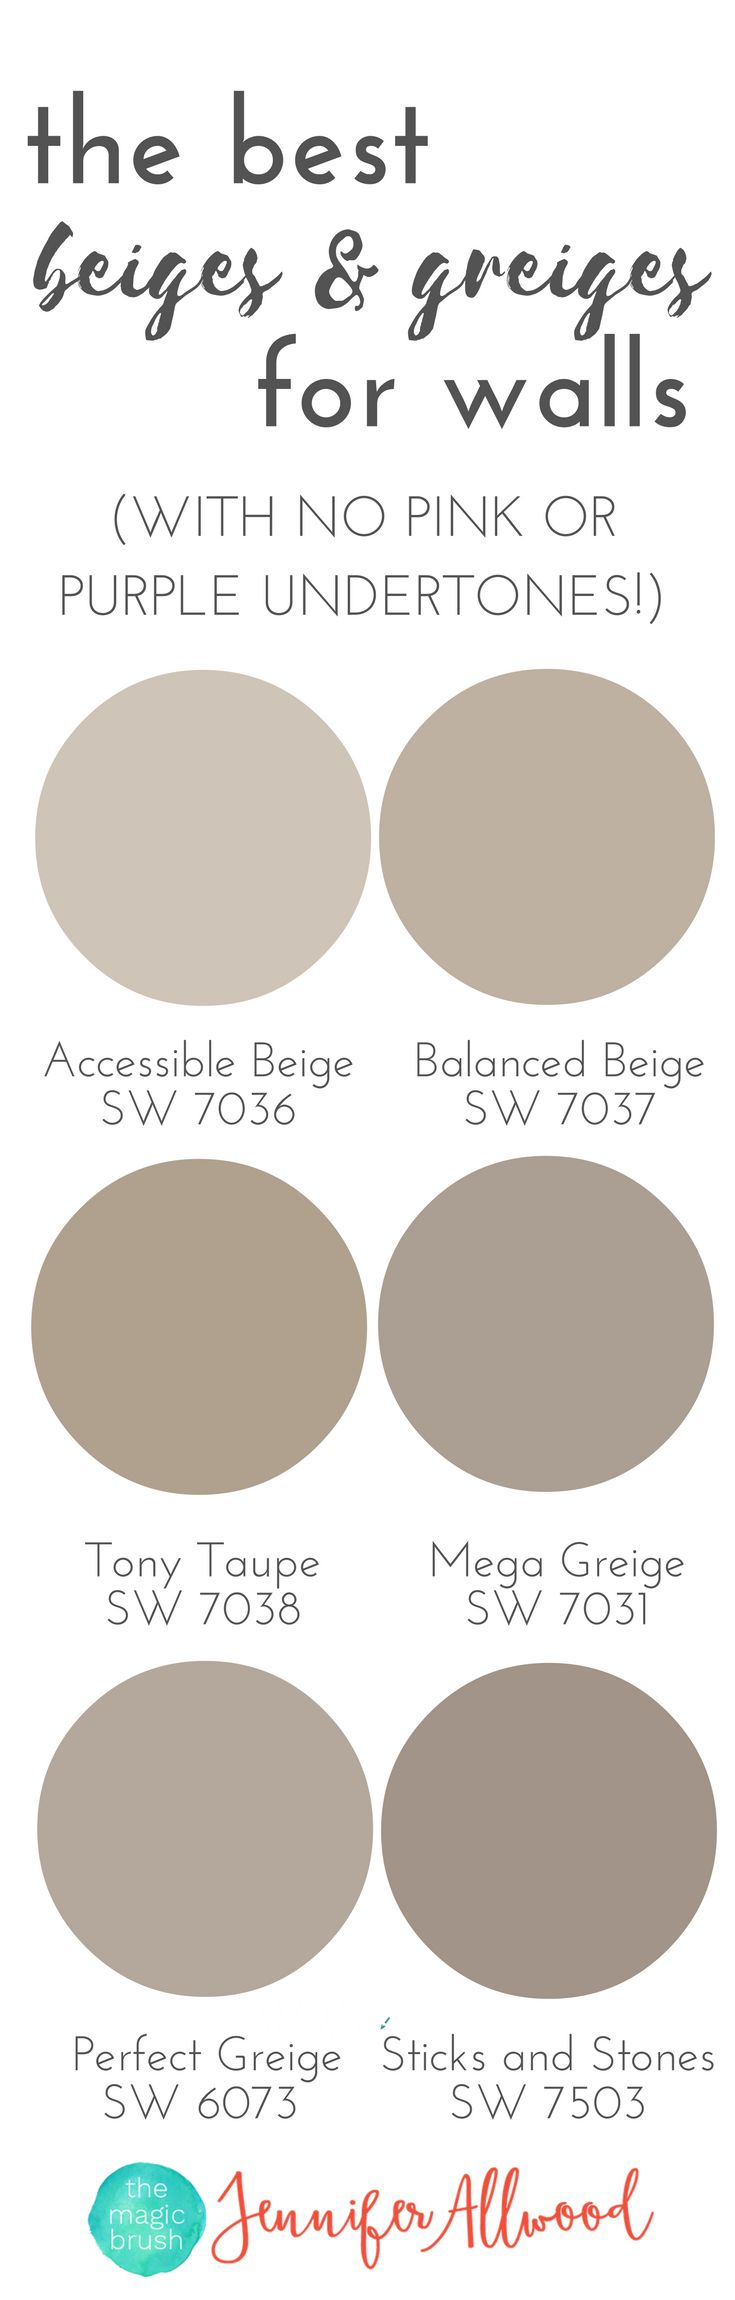 Wh what are good colors for bedrooms - The Best Beige And Greige Wall Paints For Walls Magic Brush Jennifer Allwood S Top